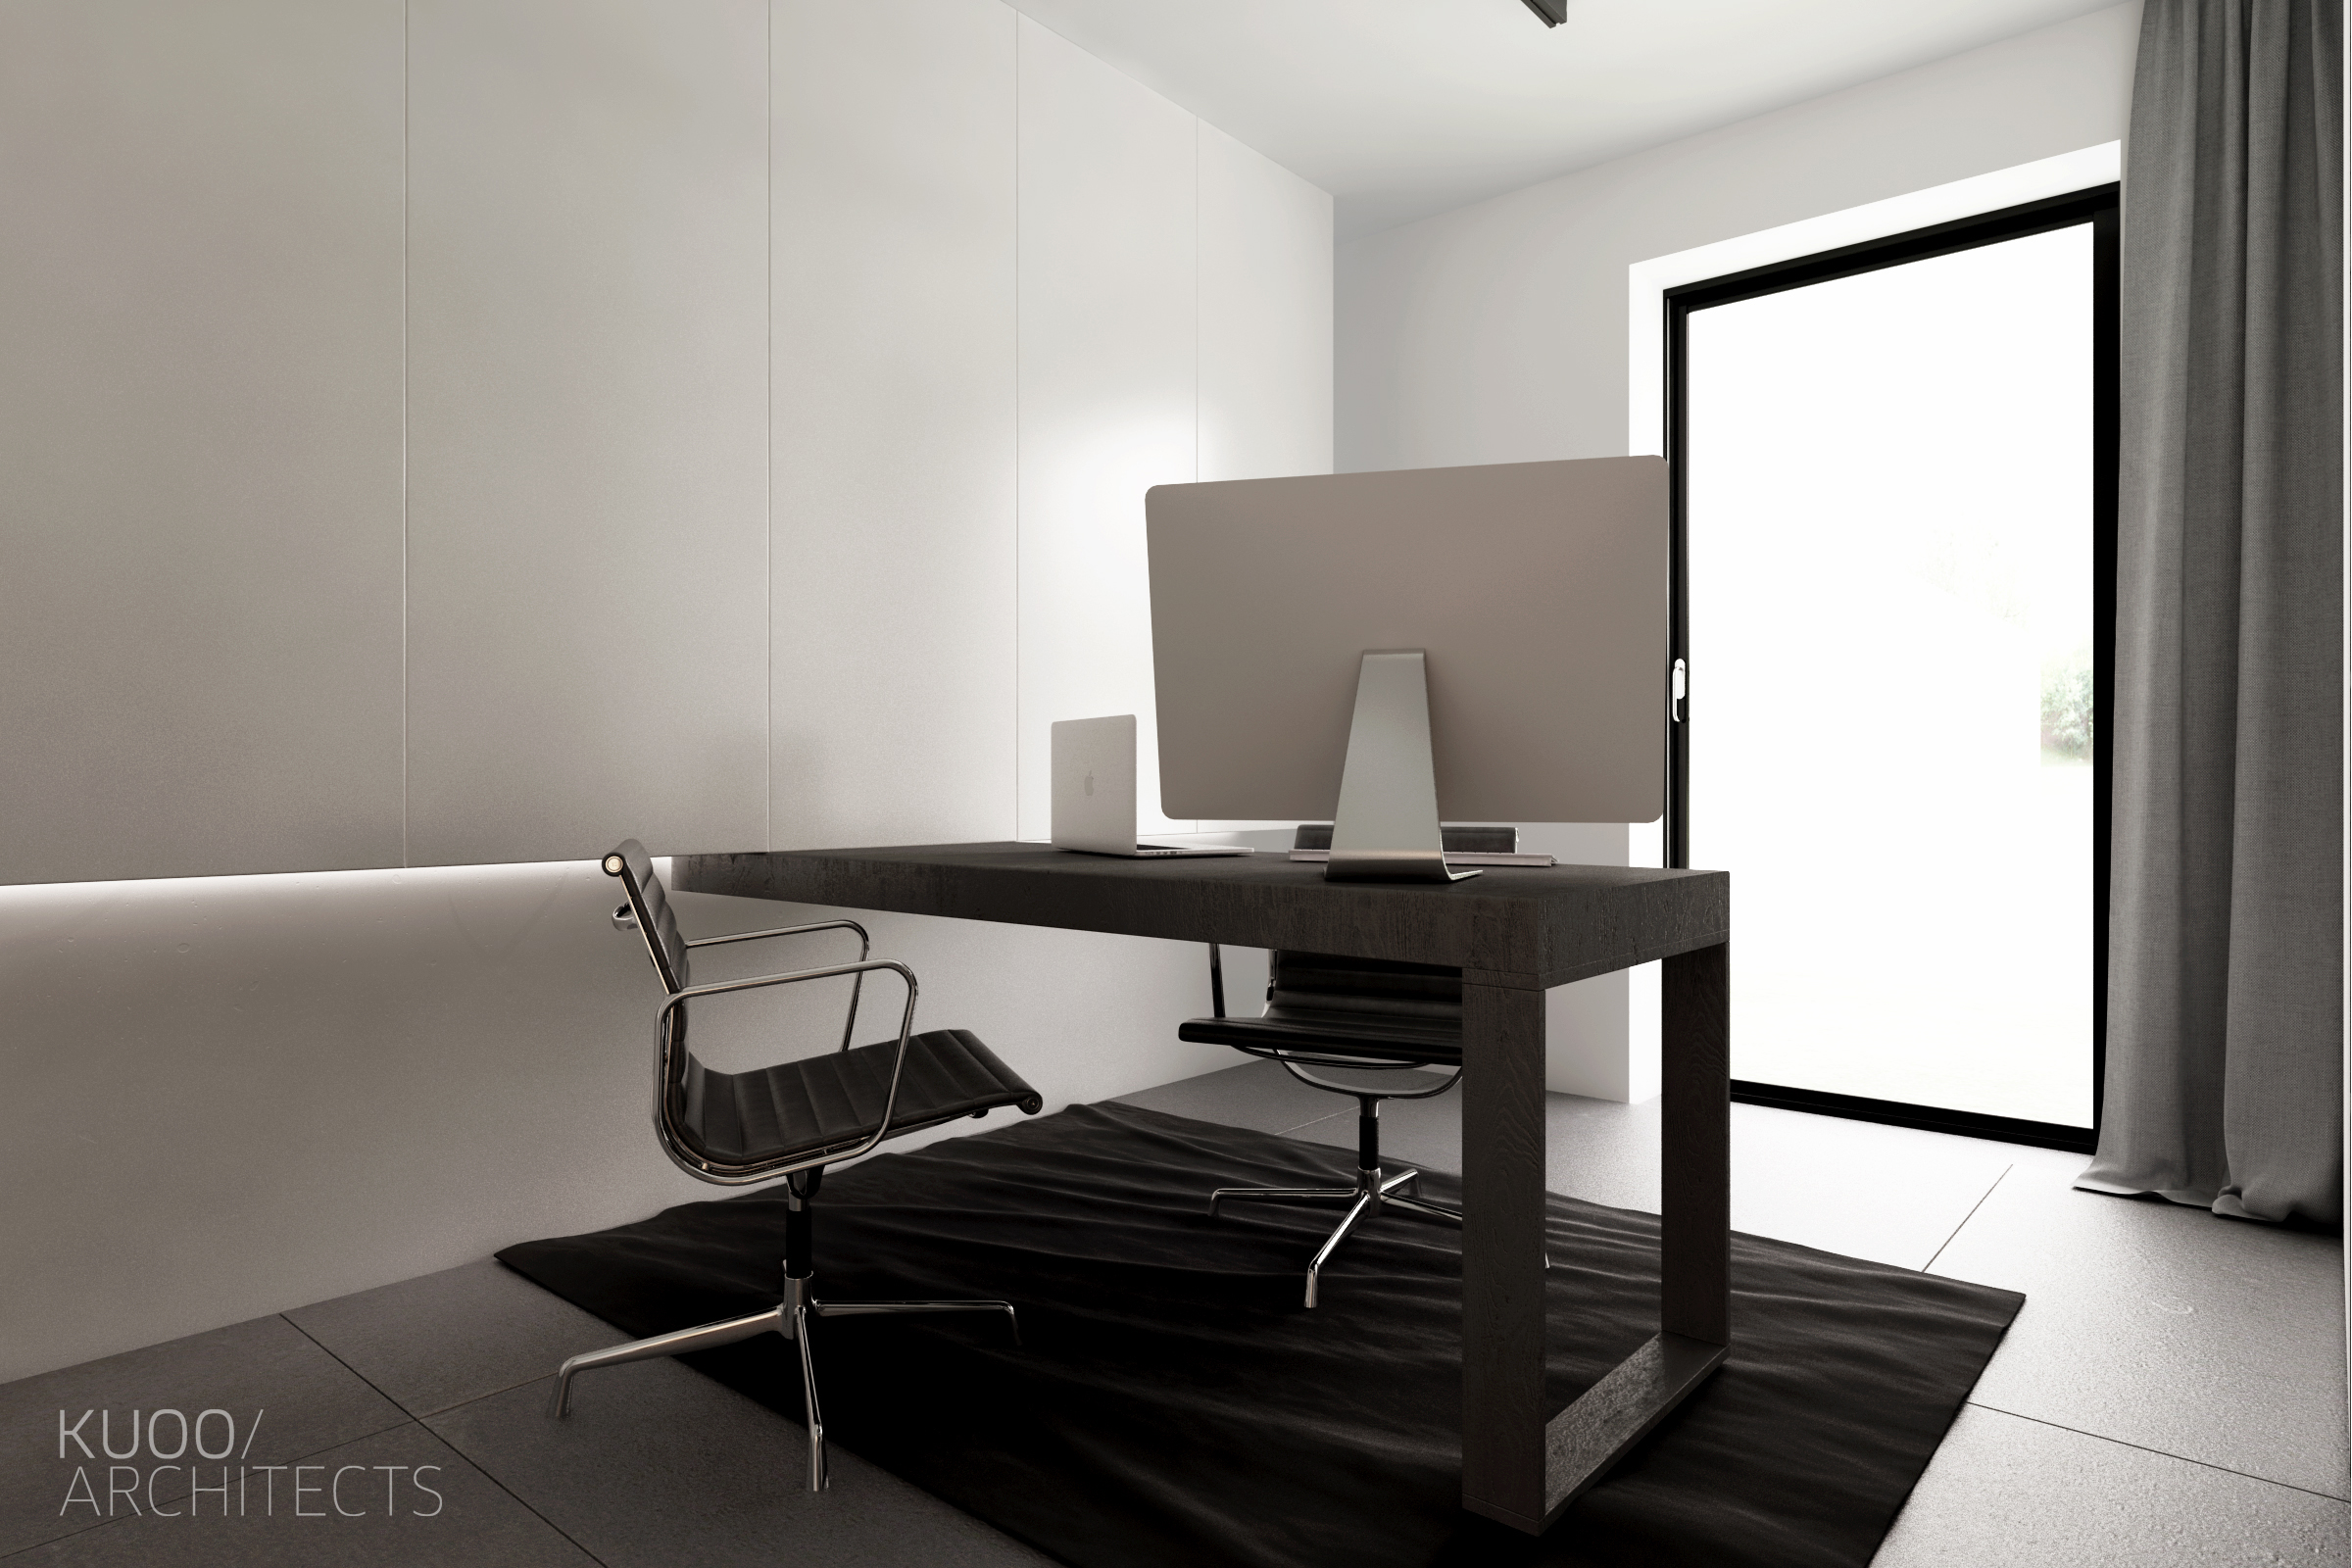 kuoo_architects_interior_design_minimal_contemporary (18) logo